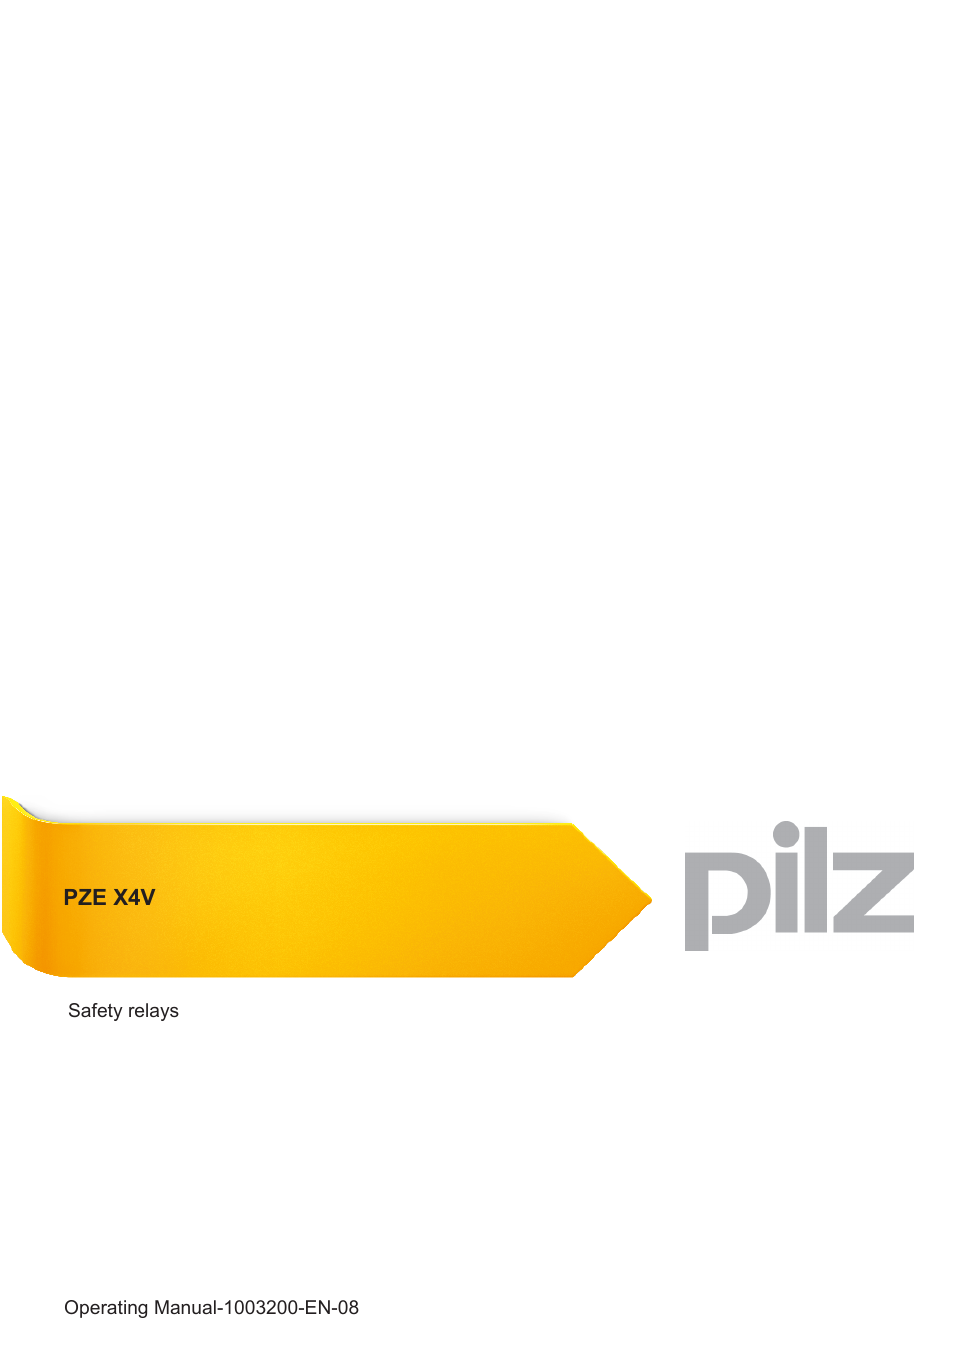 pilz pze x4v 05_24vdc 4n_o fix page1 pilz pze x4v 0,5 24vdc 4n o fix user manual 19 pages also for pnoz x4 wiring diagram at soozxer.org